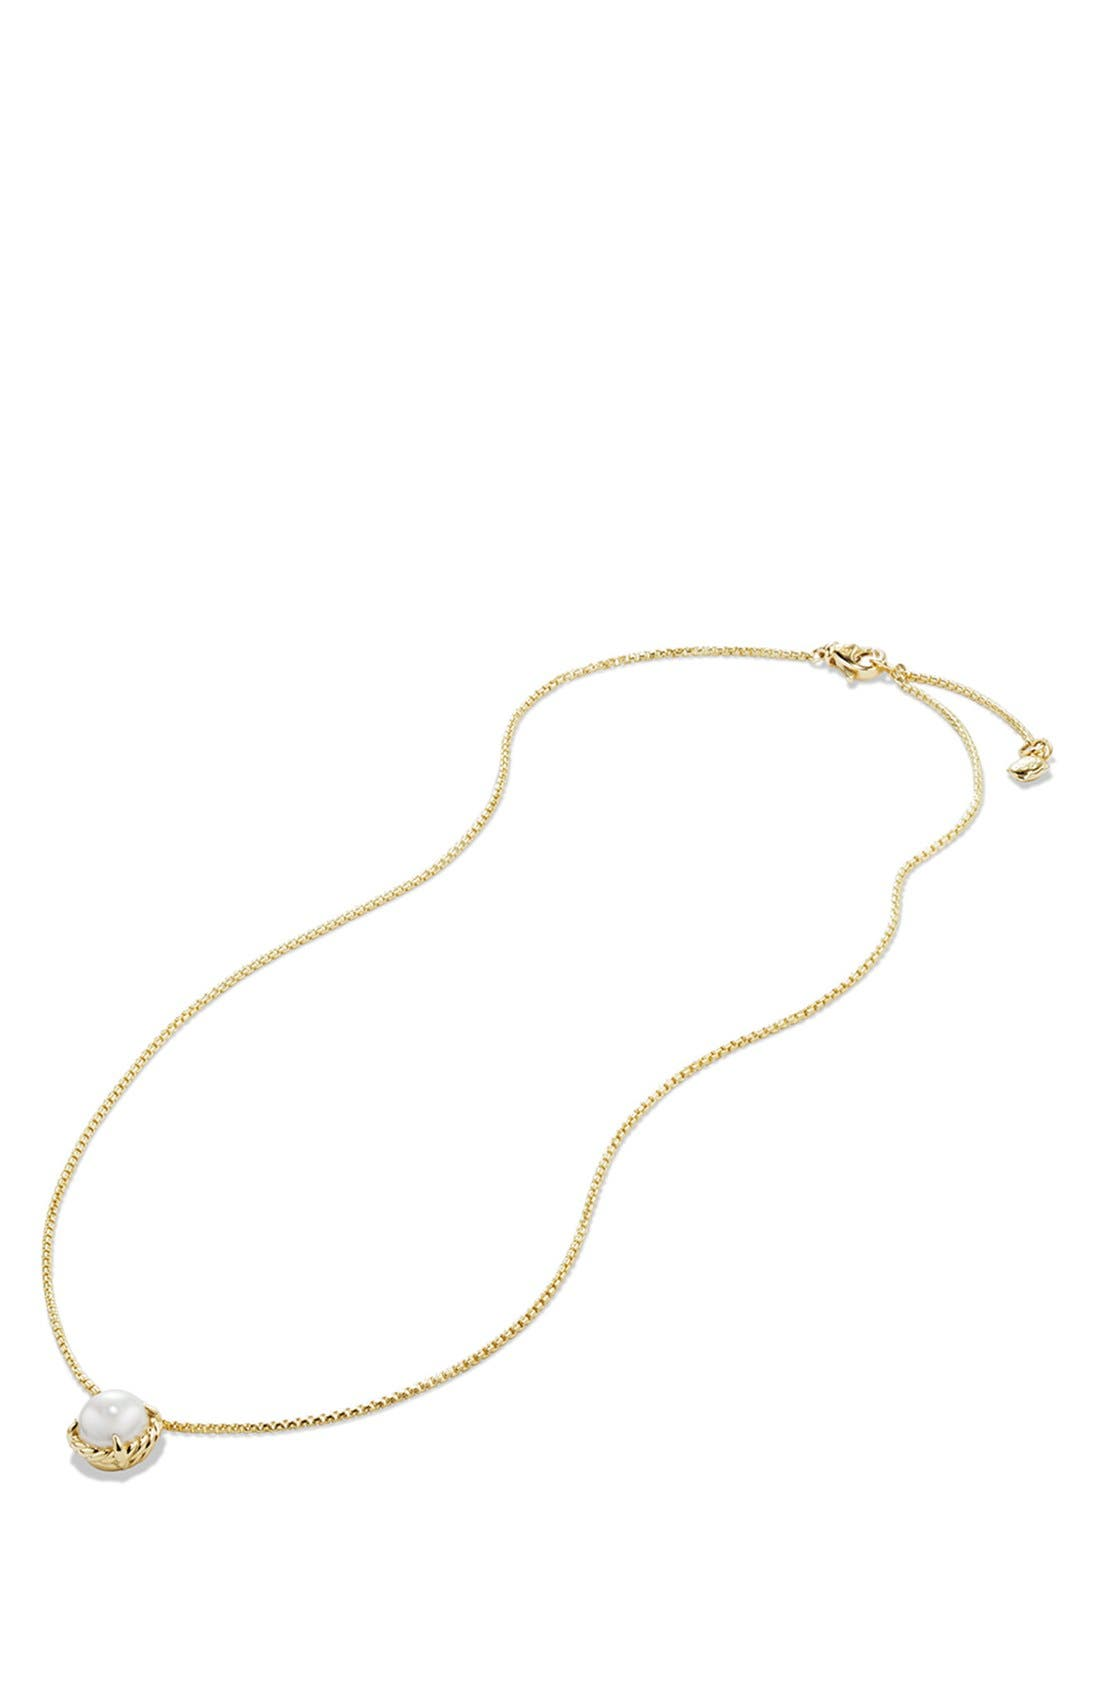 Alternate Image 3  - David Yurman 'Châtelaine' Pendant Necklace with Freshwater Pearl in 18K Gold